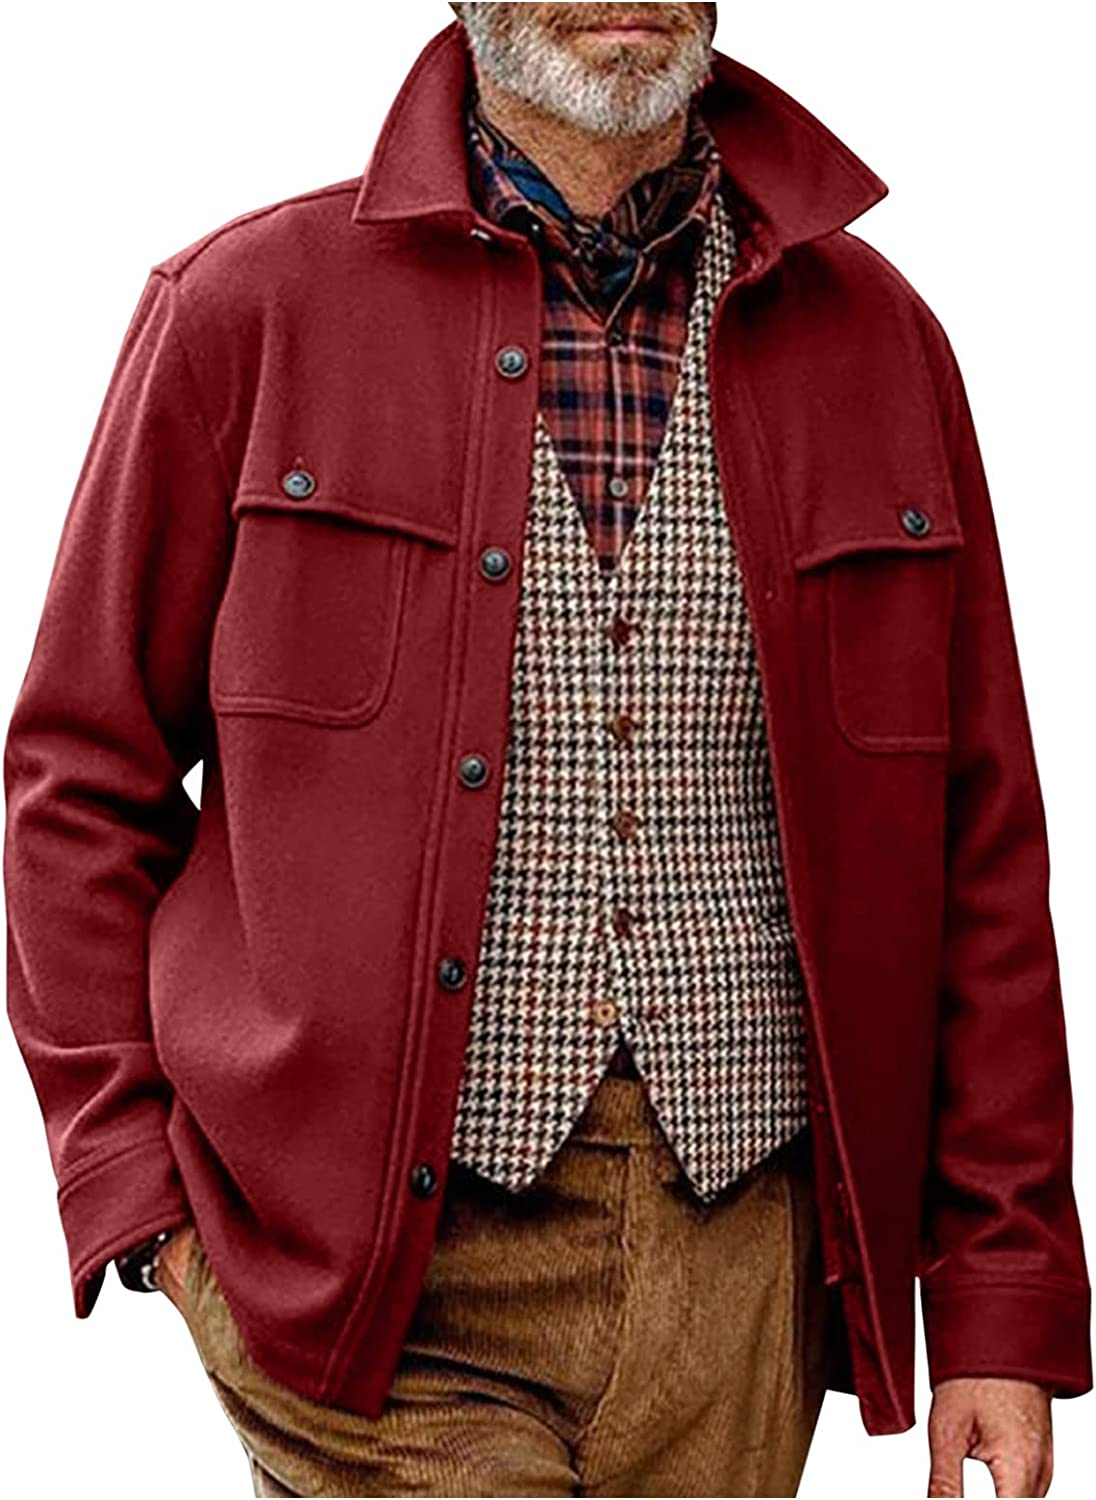 Men's Quilted Wool Coat Casual Loose Single Breasted Thick Walker Trench Coat Classic Pure Color Topcoat Winter/Fall